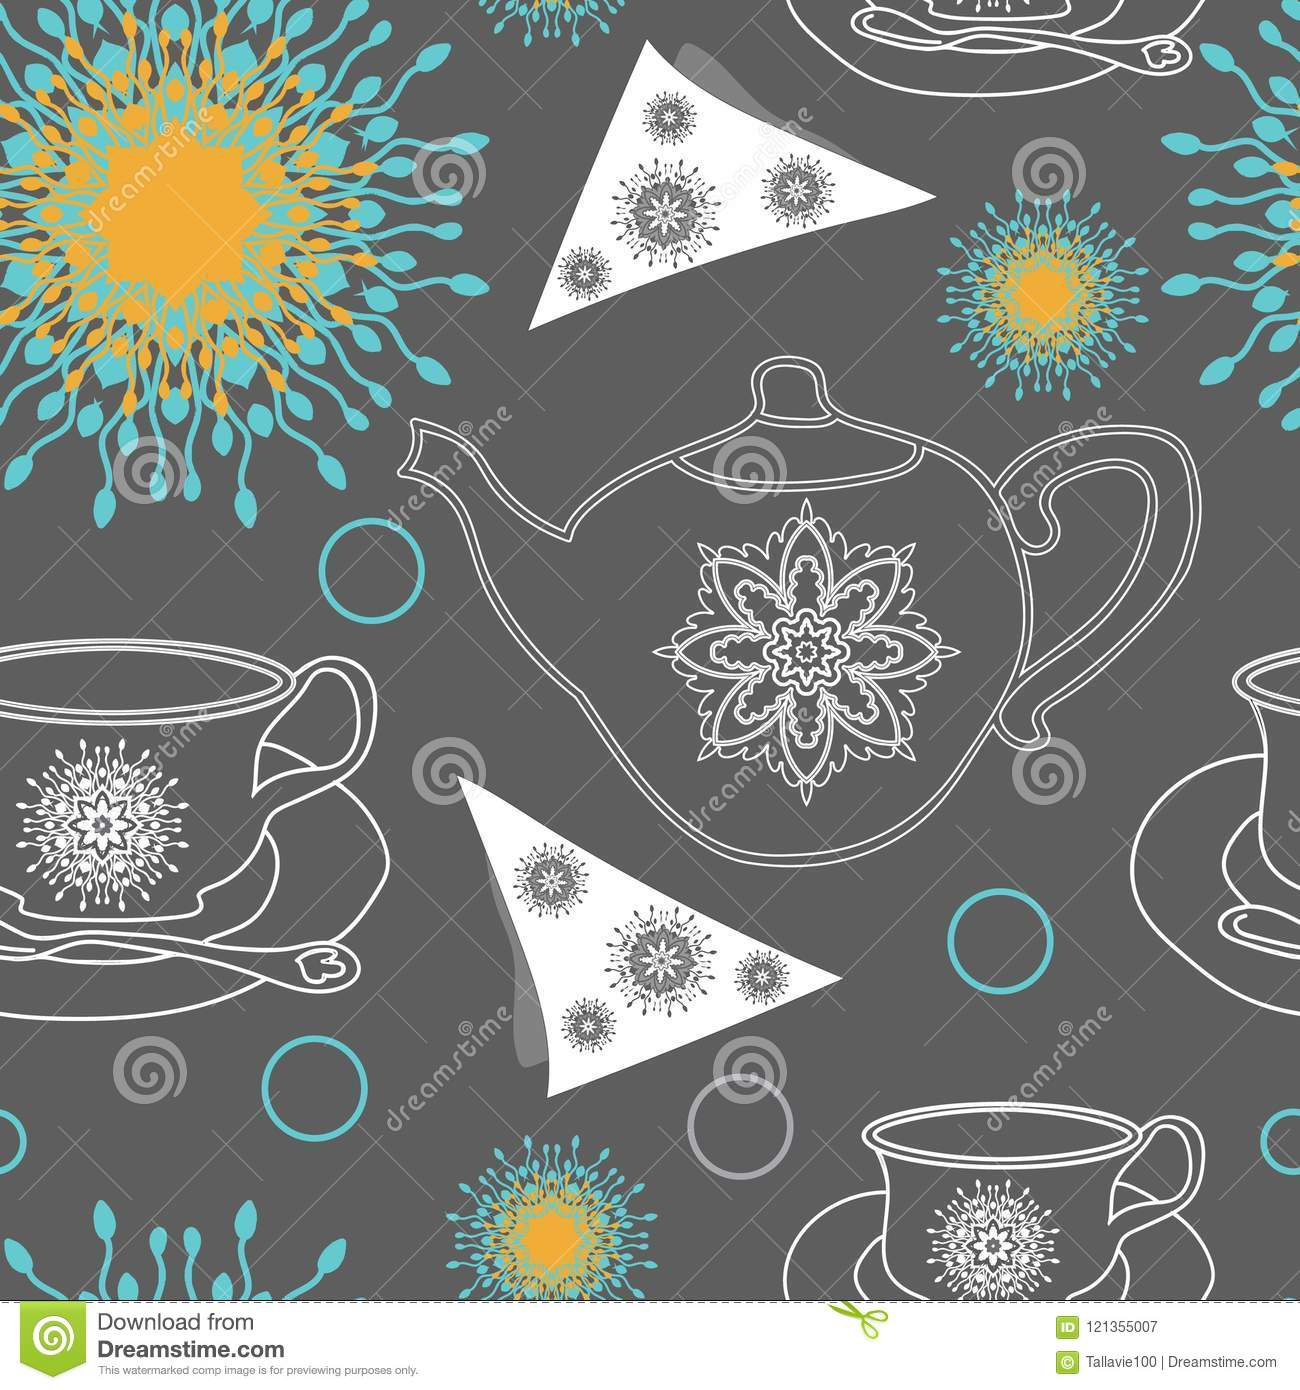 f35ff0429952 Tea Pots,Tea Cups,napkins and Lace Flowers -Garden Tea Party,Seamless  Repeat Pattern swatch. Pattern Background. Surface pattern Design in  pink,white and ...